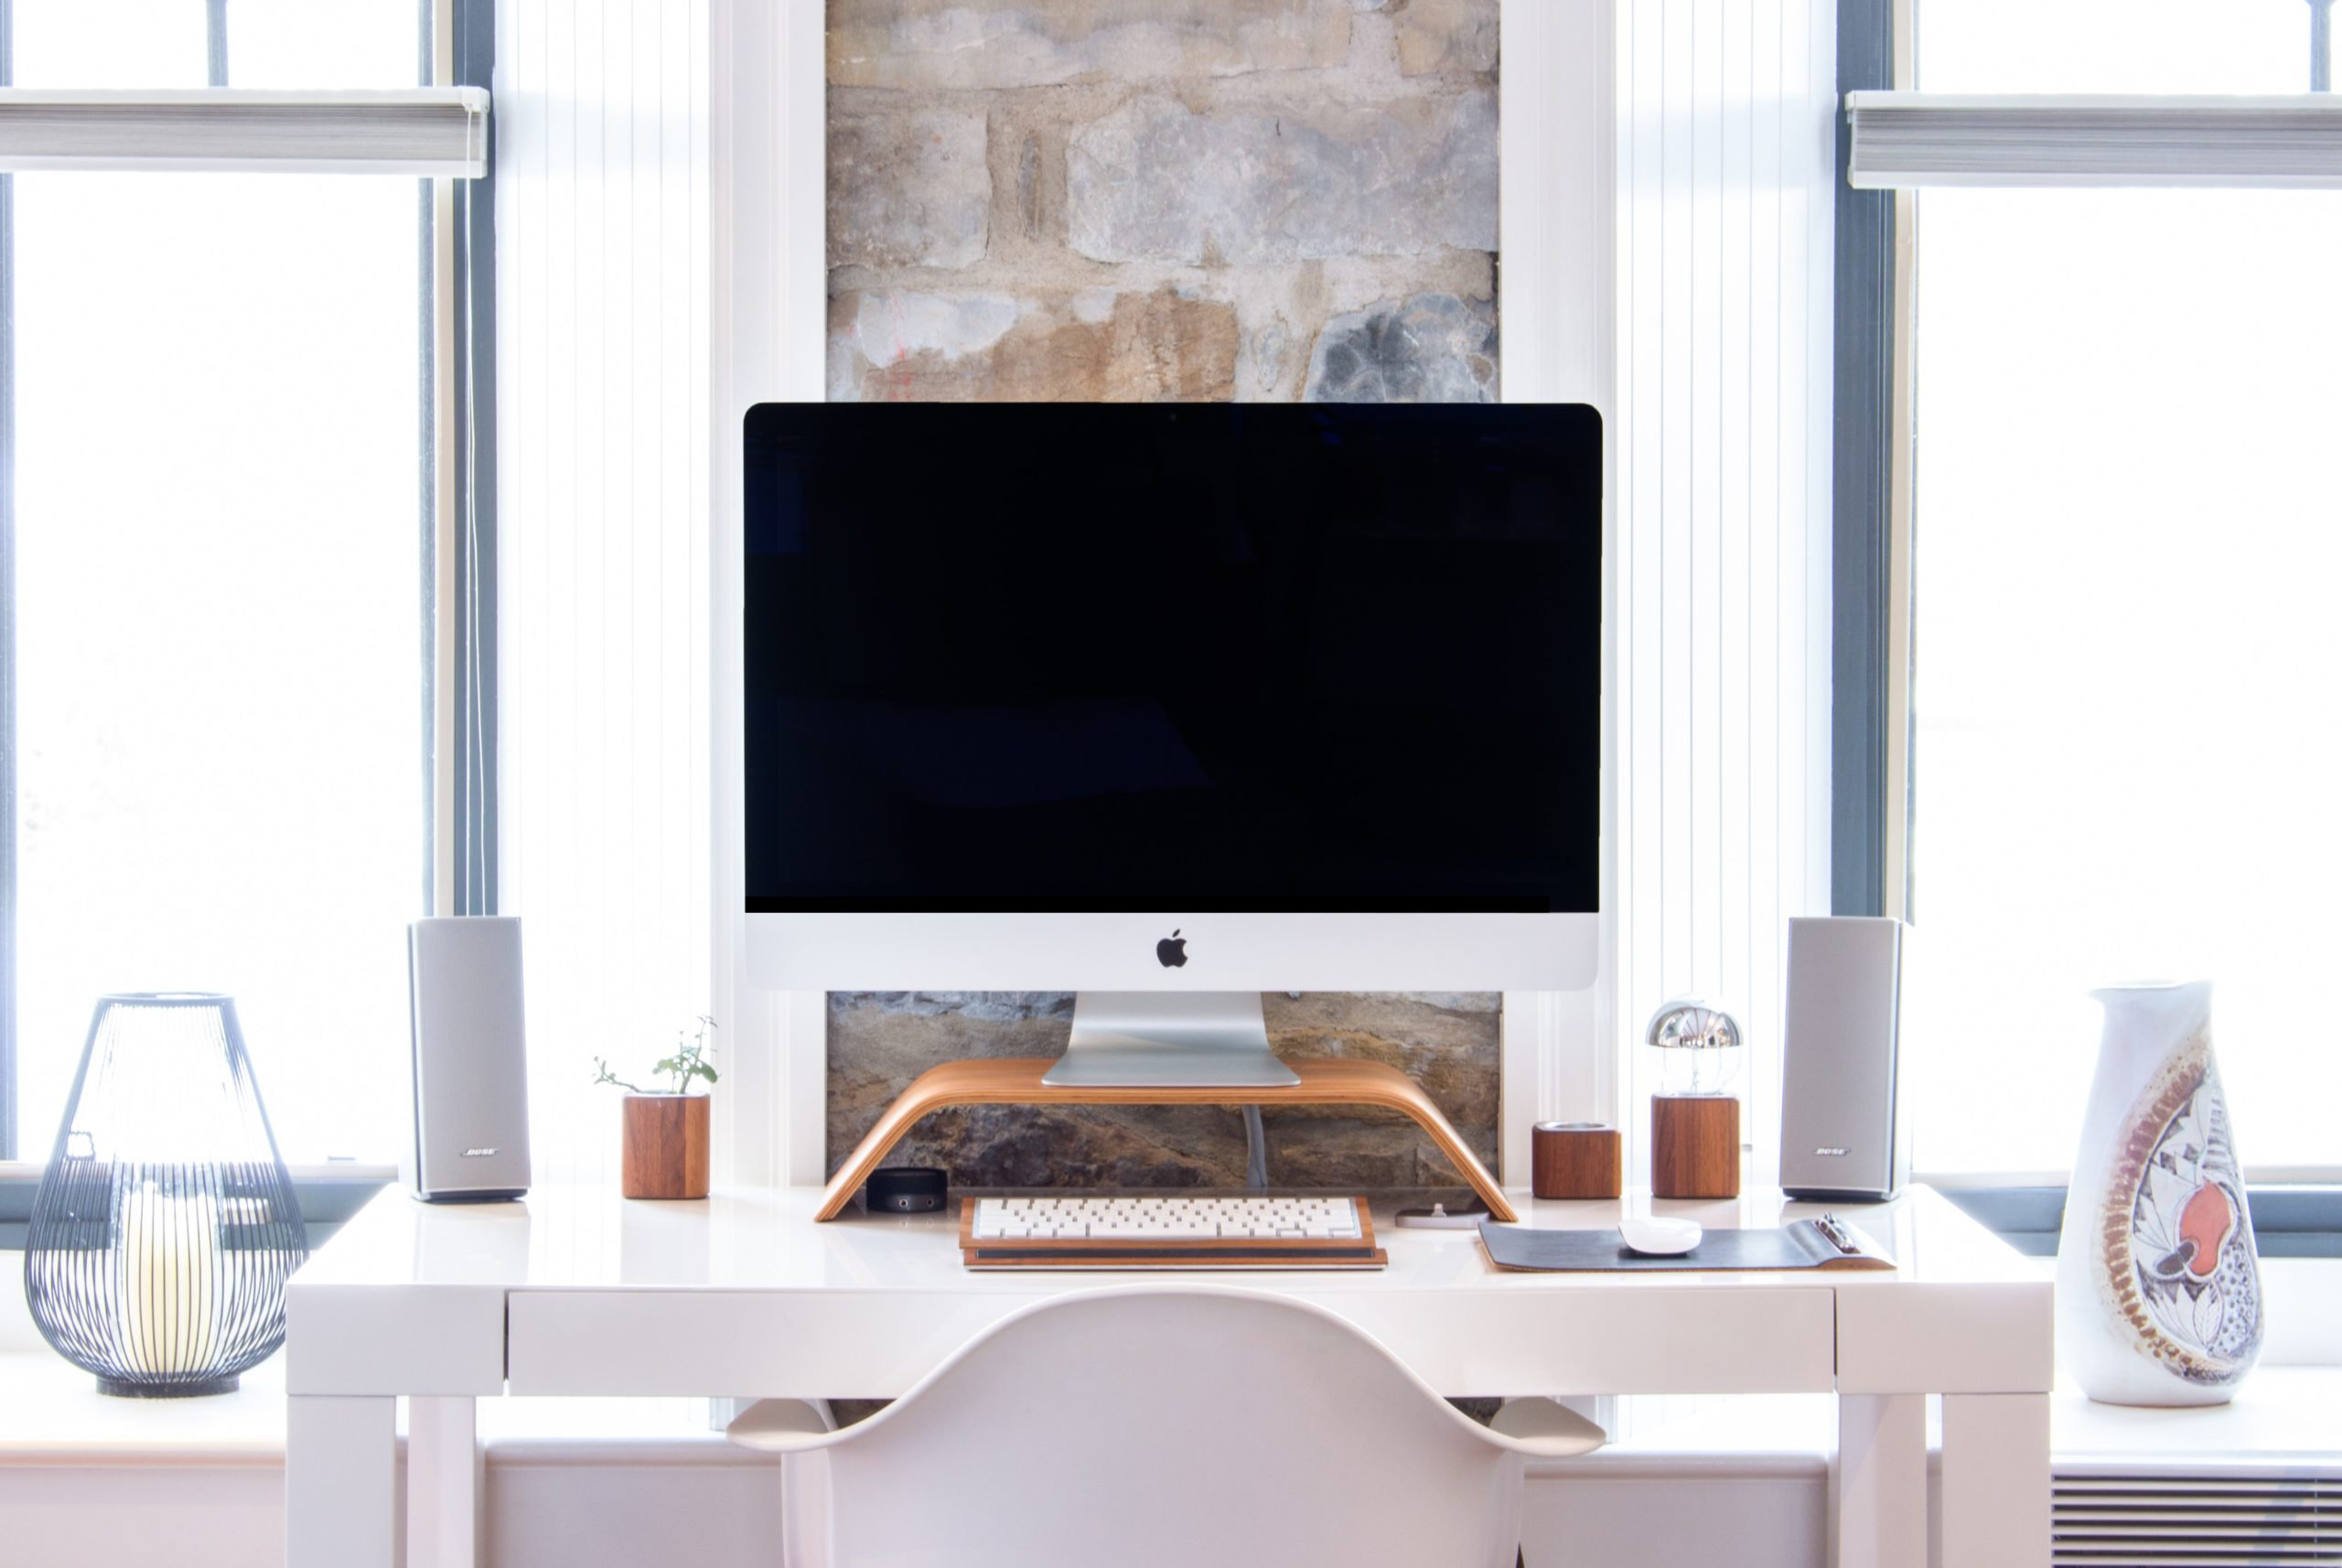 Home Office Ergonomic Adjustments to Lessen Body Aches and Other Risks.